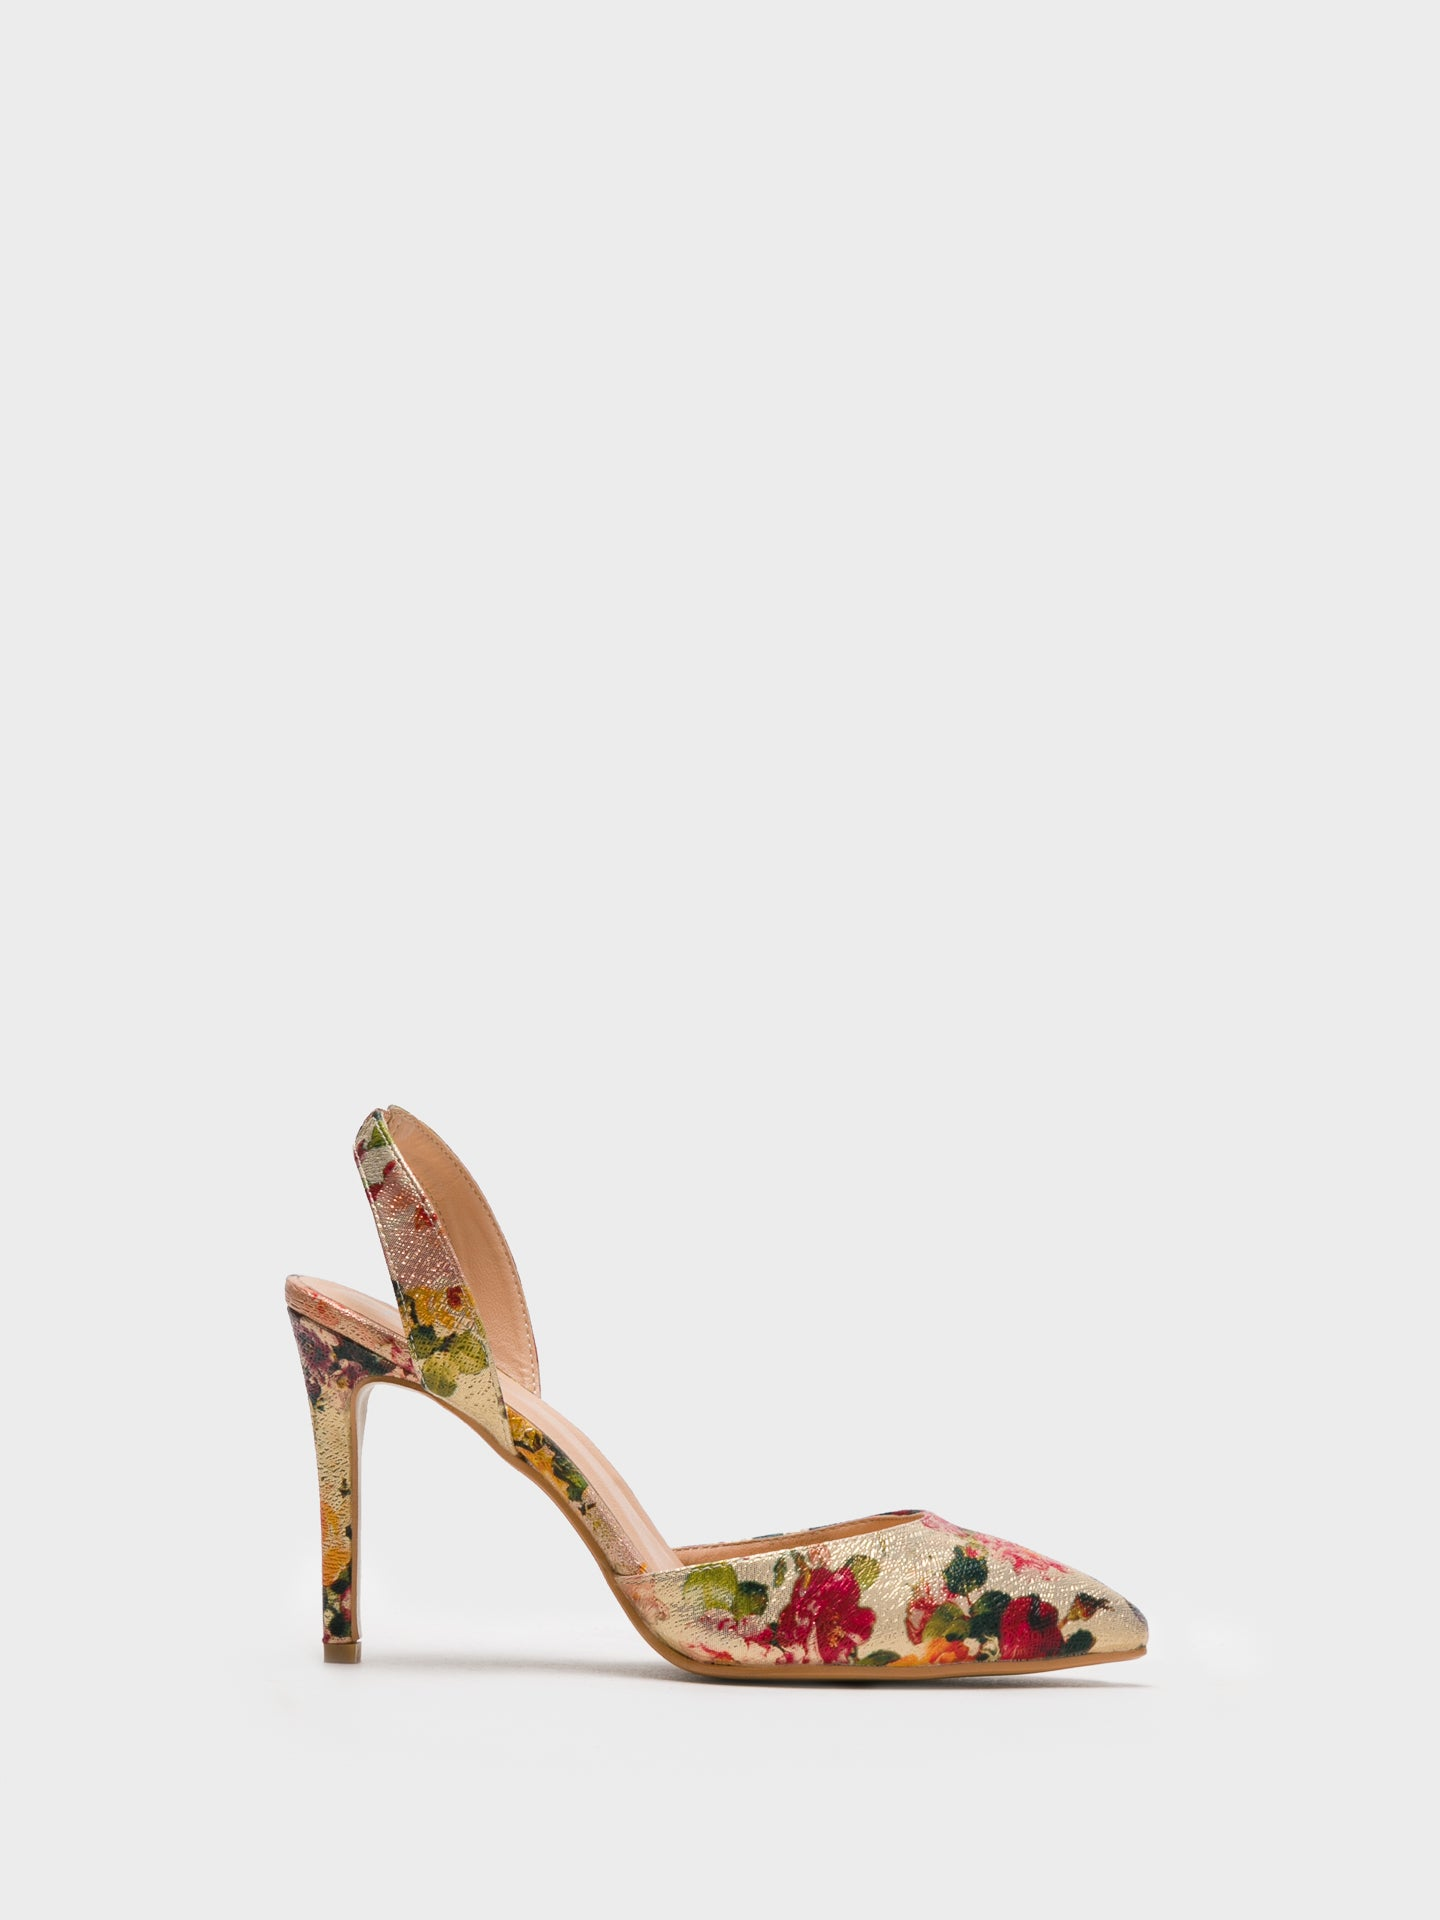 Foreva Multicolor Sling-Back Pumps Shoes